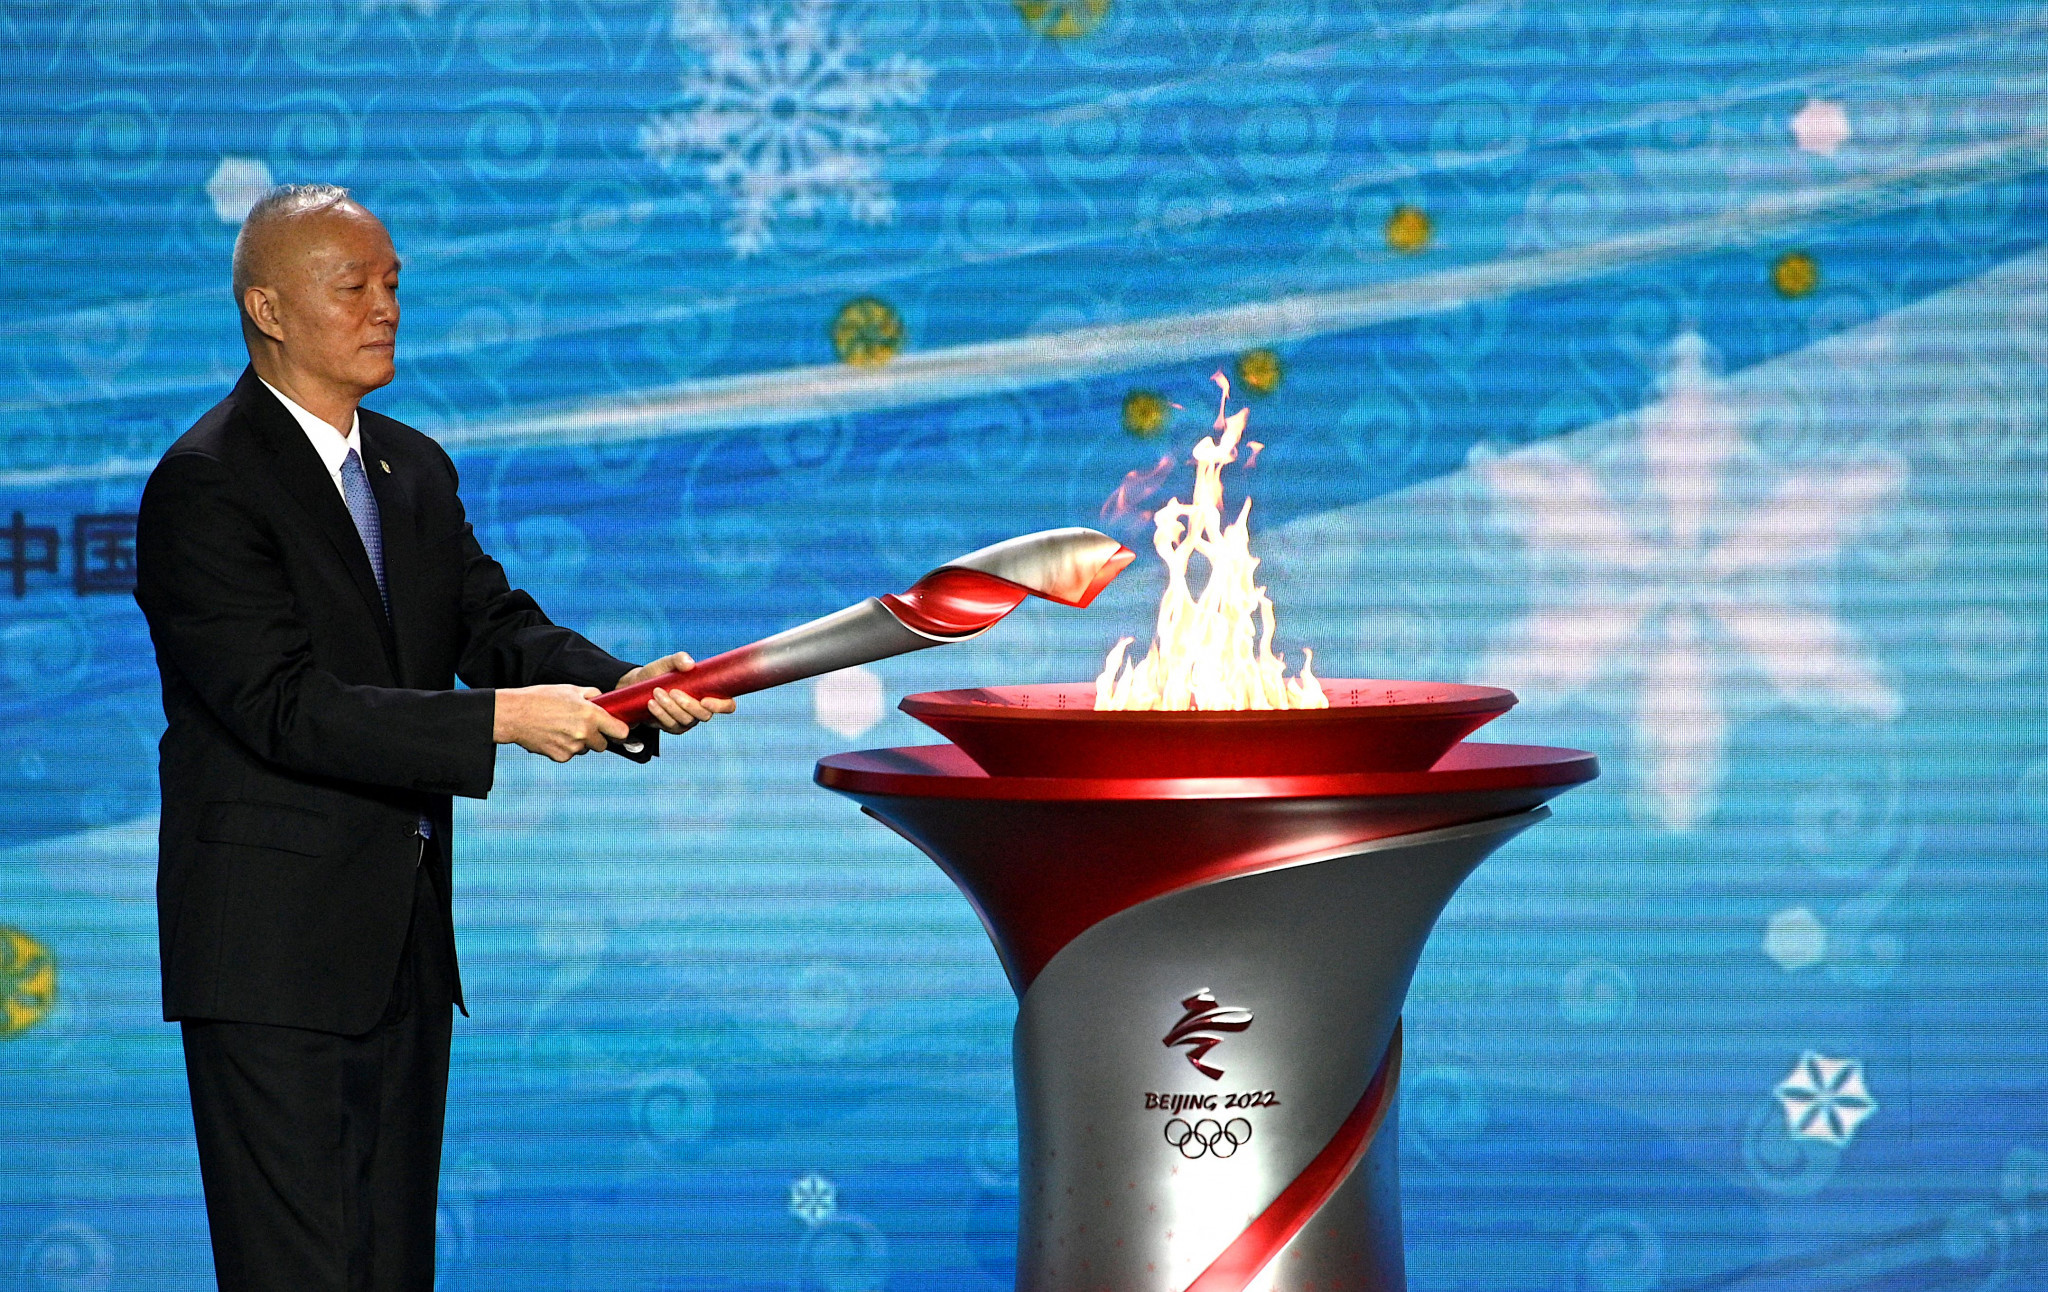 Beijing 2022 Torch arrives in China as plans revealed for scaled-back Relay